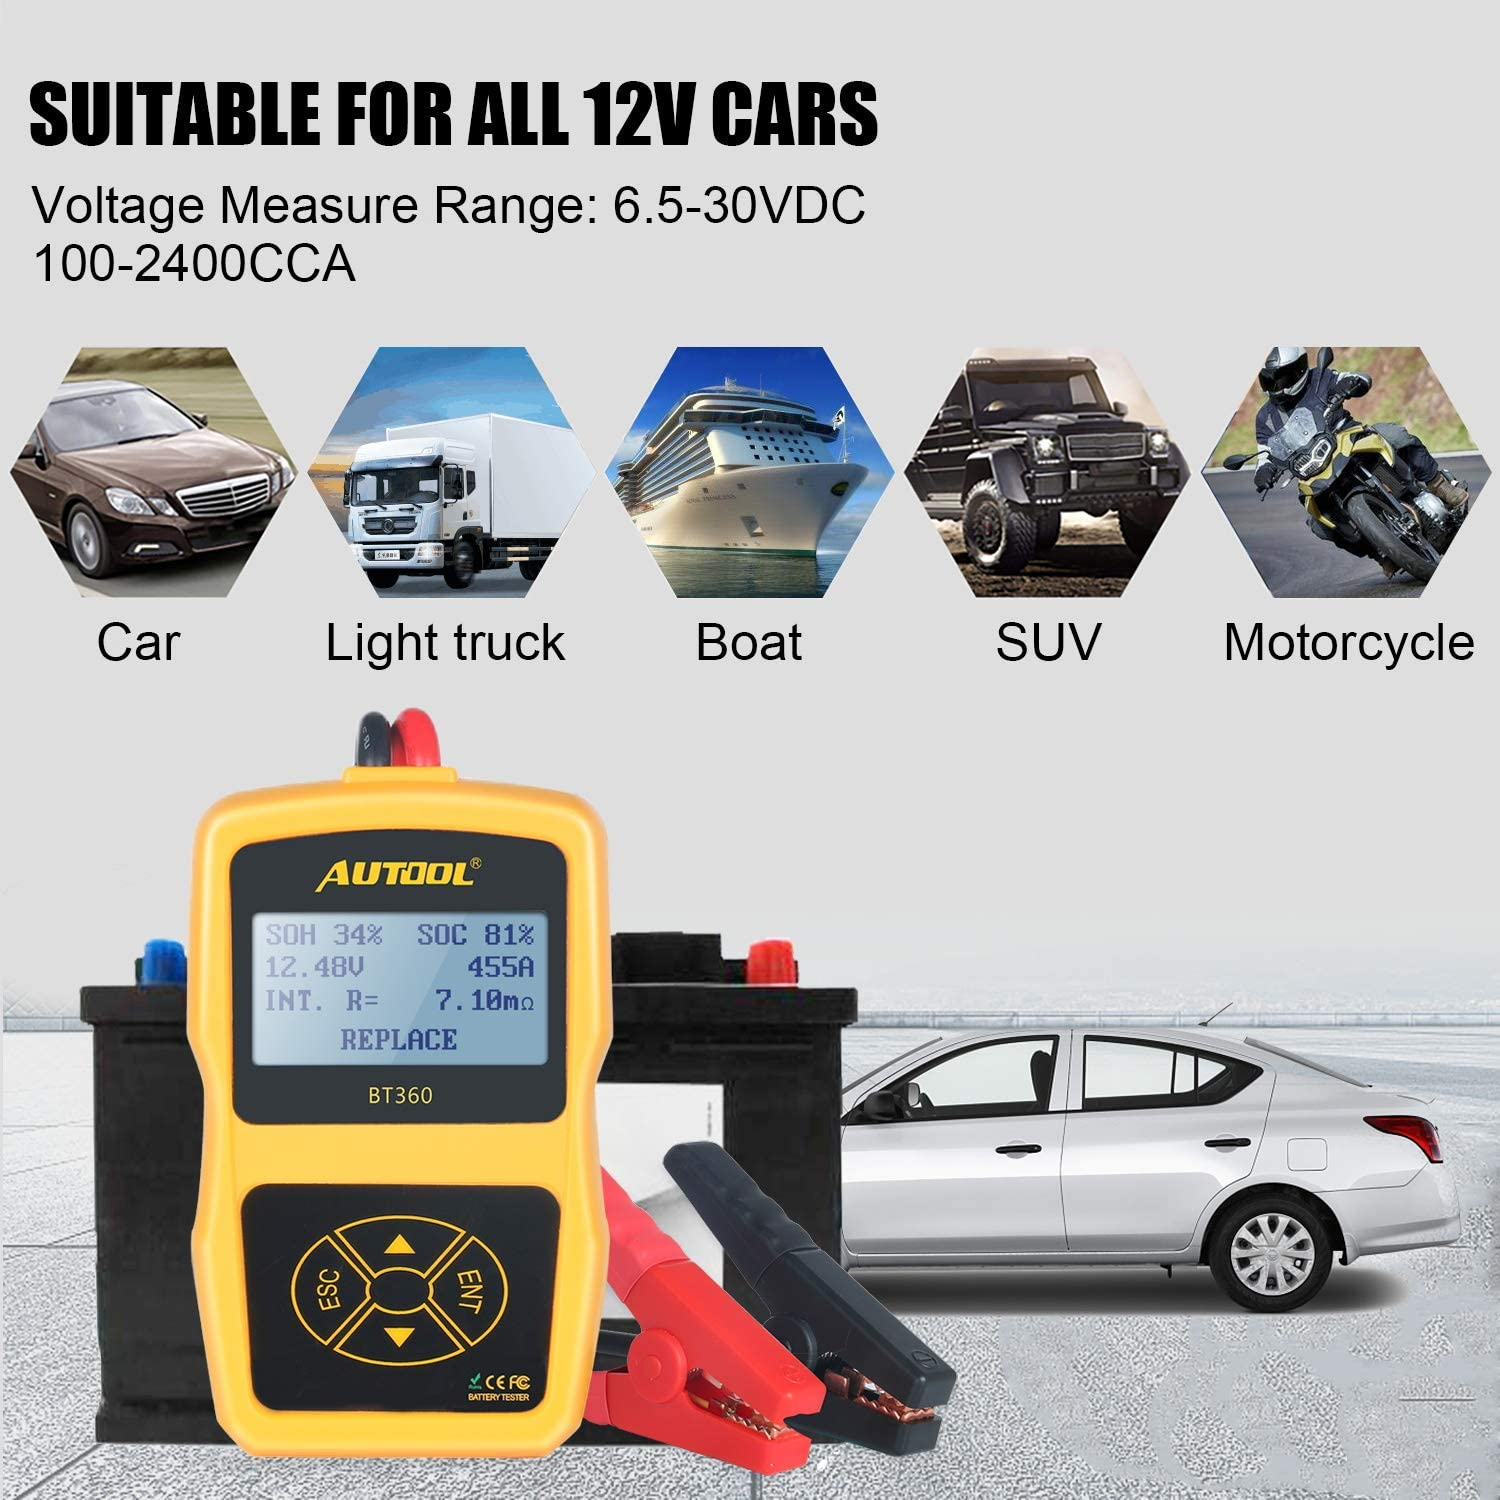 BT 360 Car Battery Load Tester Checker 12V 100-2400 CCA Automotive Bad Cell Test Tool Regular Flooded,Auto Cranking and Charging System Diagnostic Digital Analyzer